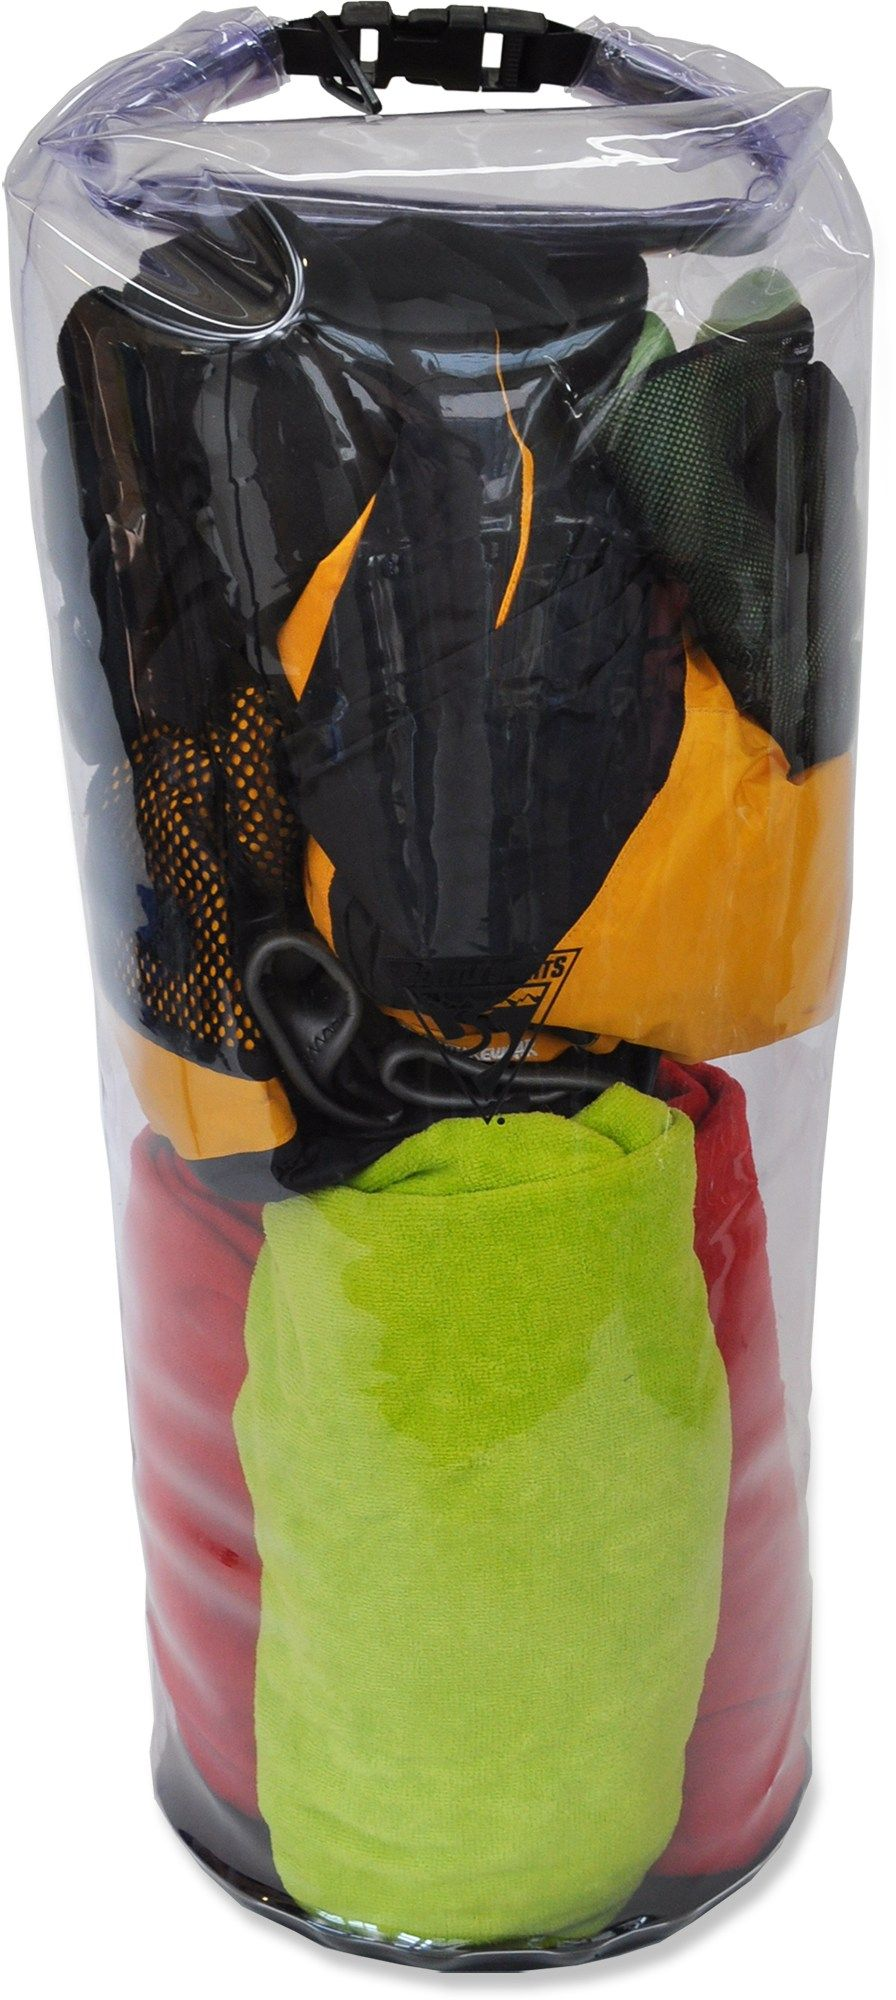 Seattle Sports Eco Optidry Bag 40 Liters Seattle